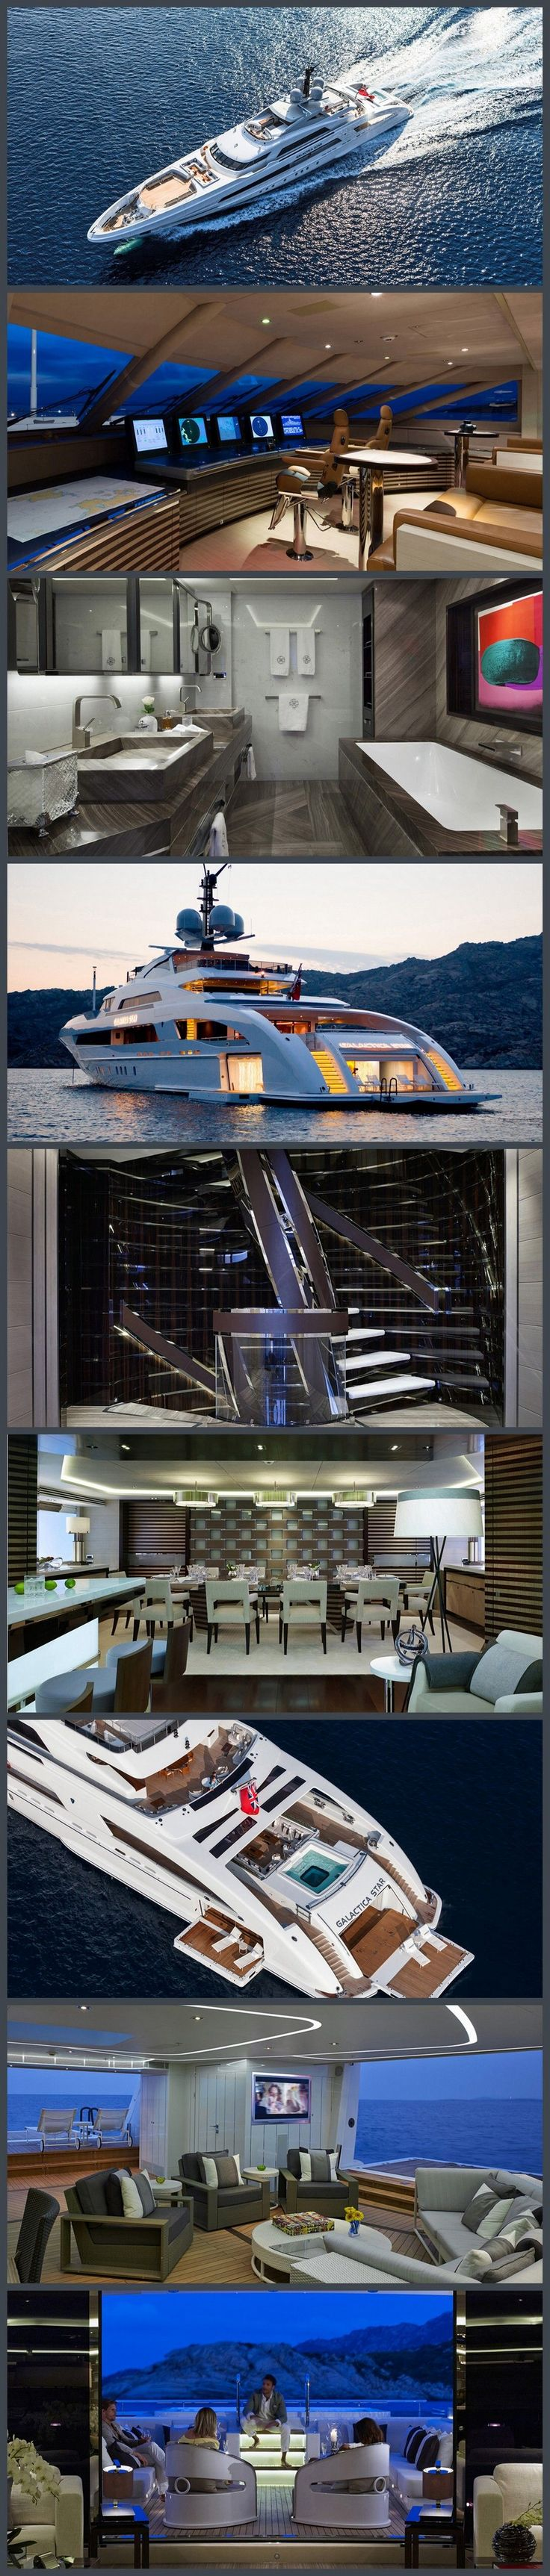 Yacht interior the stairs bathroom and dining room are beautiful. A floating house. I would sell everything I own buy this and live on it